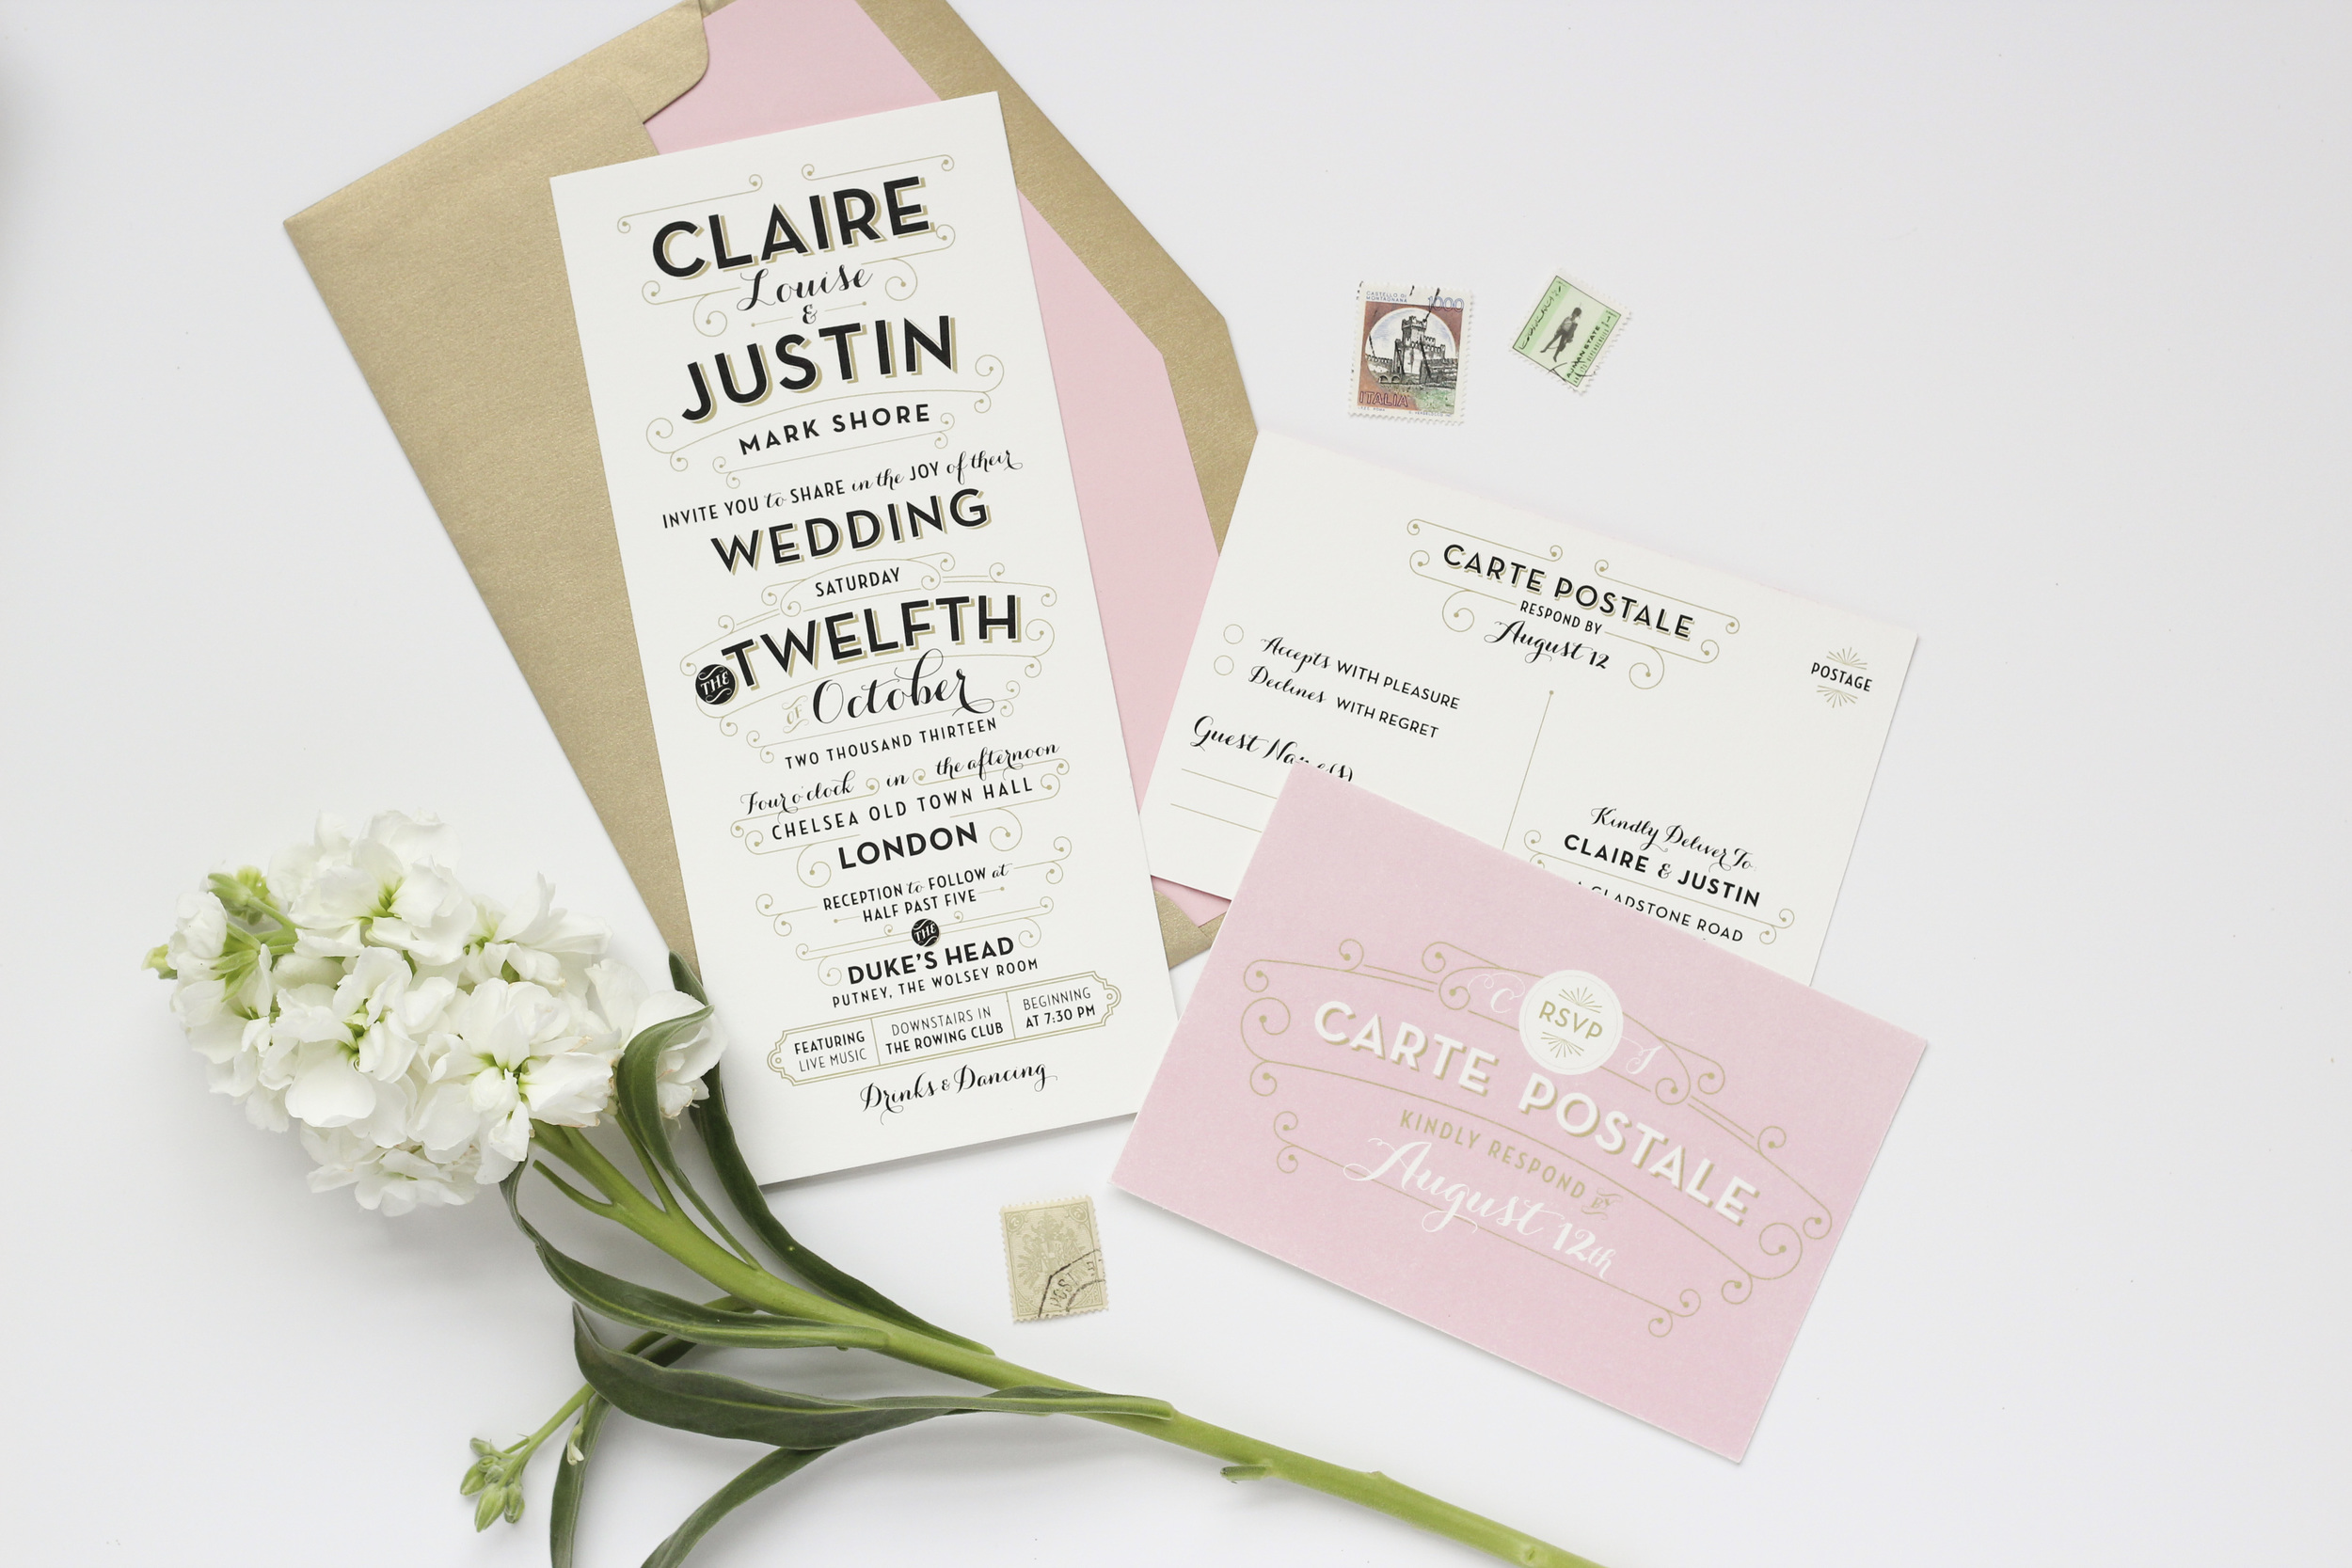 Custom Invitations with a Touch of Vintage Charm